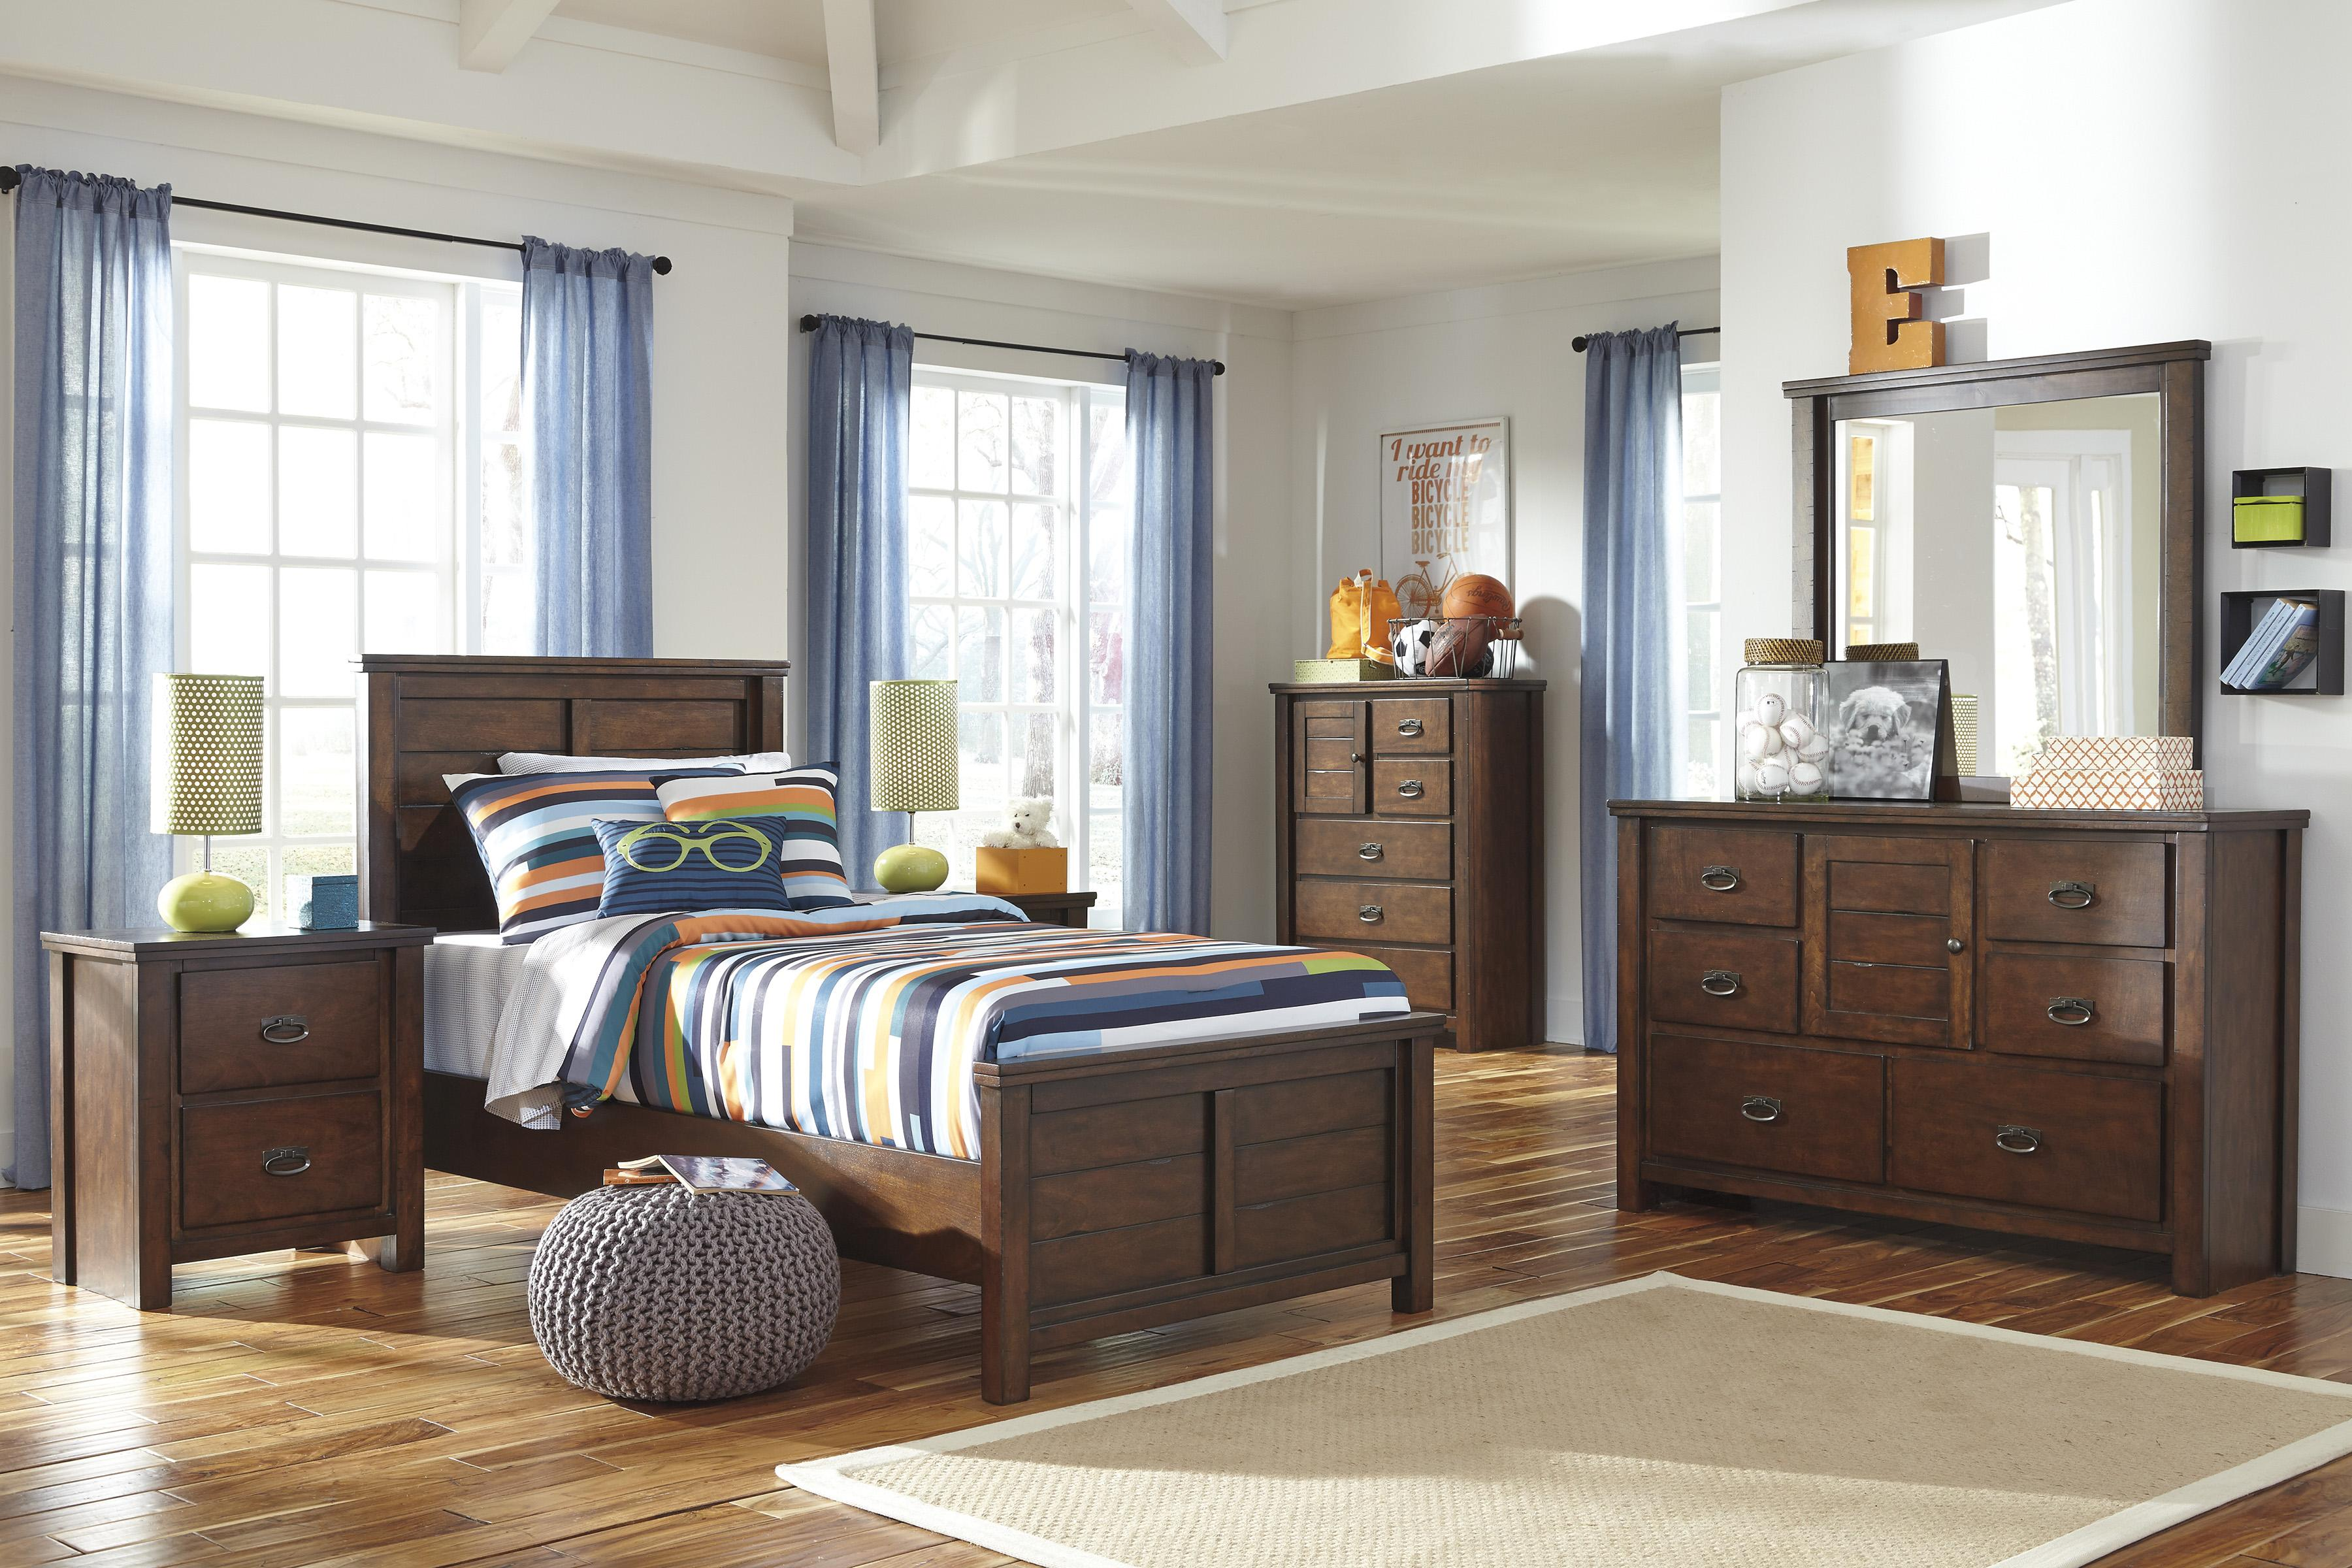 Signature Design by Ashley Ladiville Twin Bedroom Group - Item Number: B567 T Bedroom Group 1